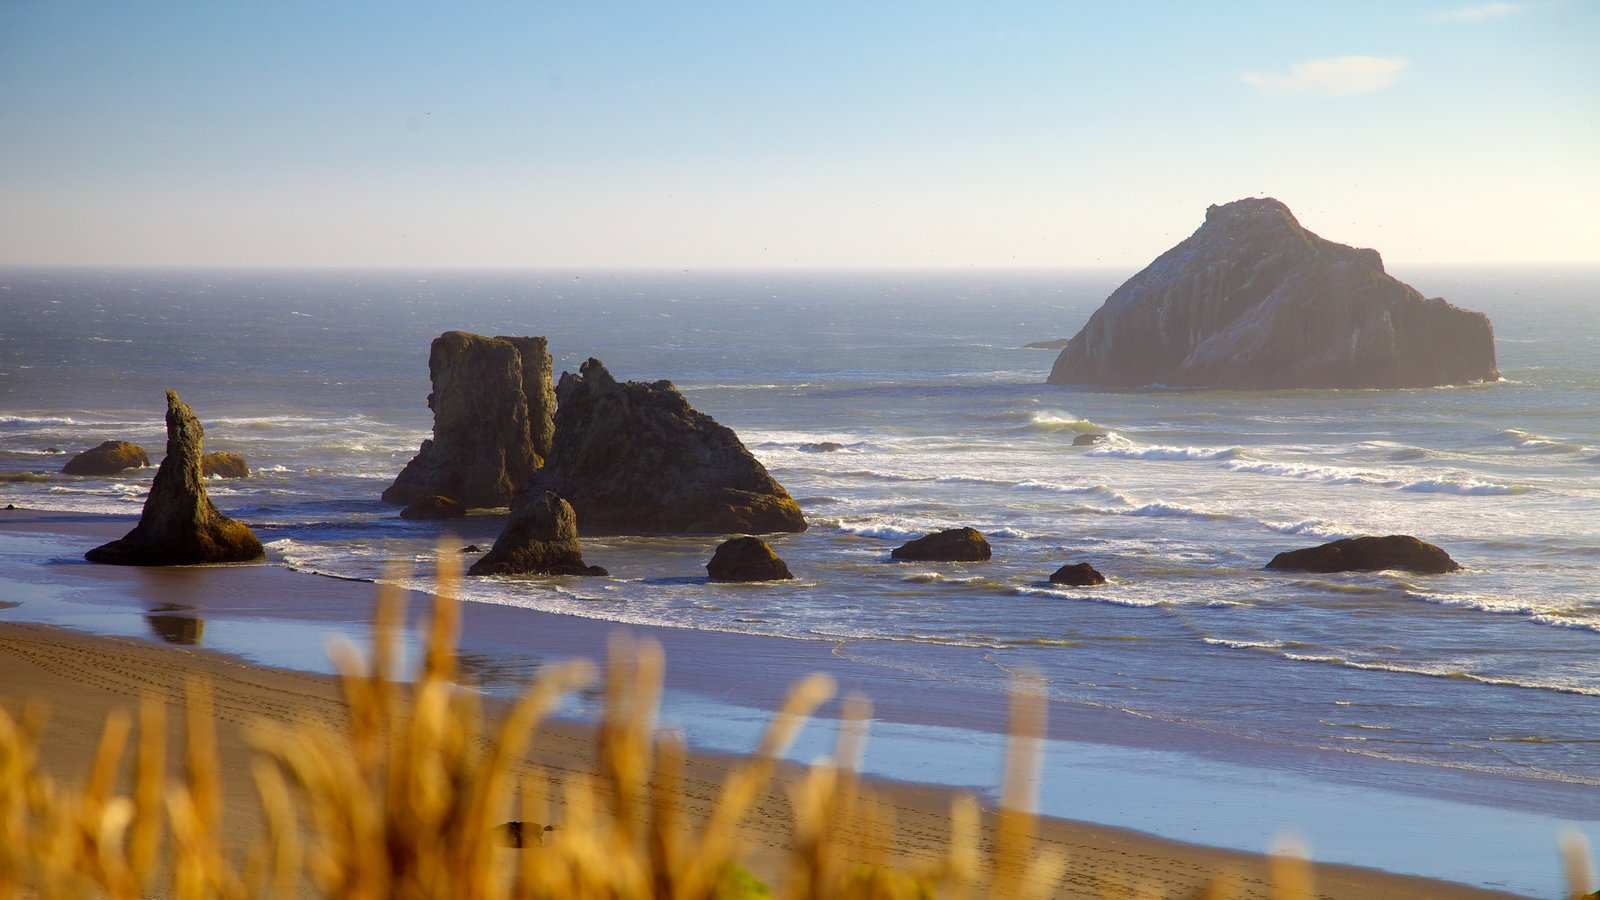 Bandon Beach which includes rugged coastline and a sandy beach